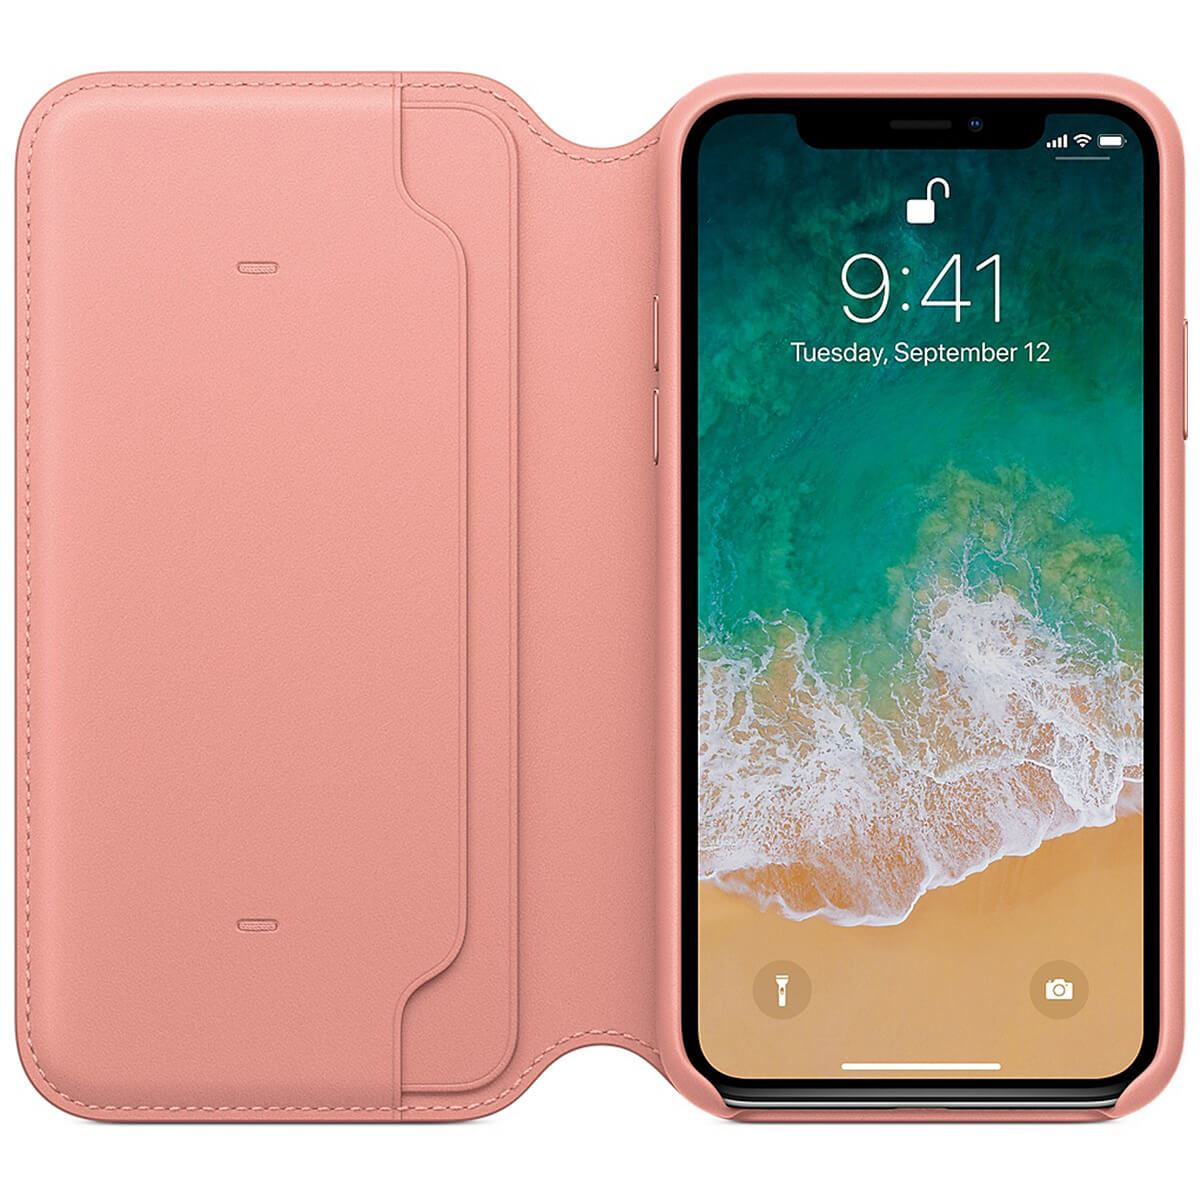 Genuine-Leather-Folio-Flip-Wallet-Case-Cover-For-Apple-iPhone-X-8-7-6S-6-Plus thumbnail 39